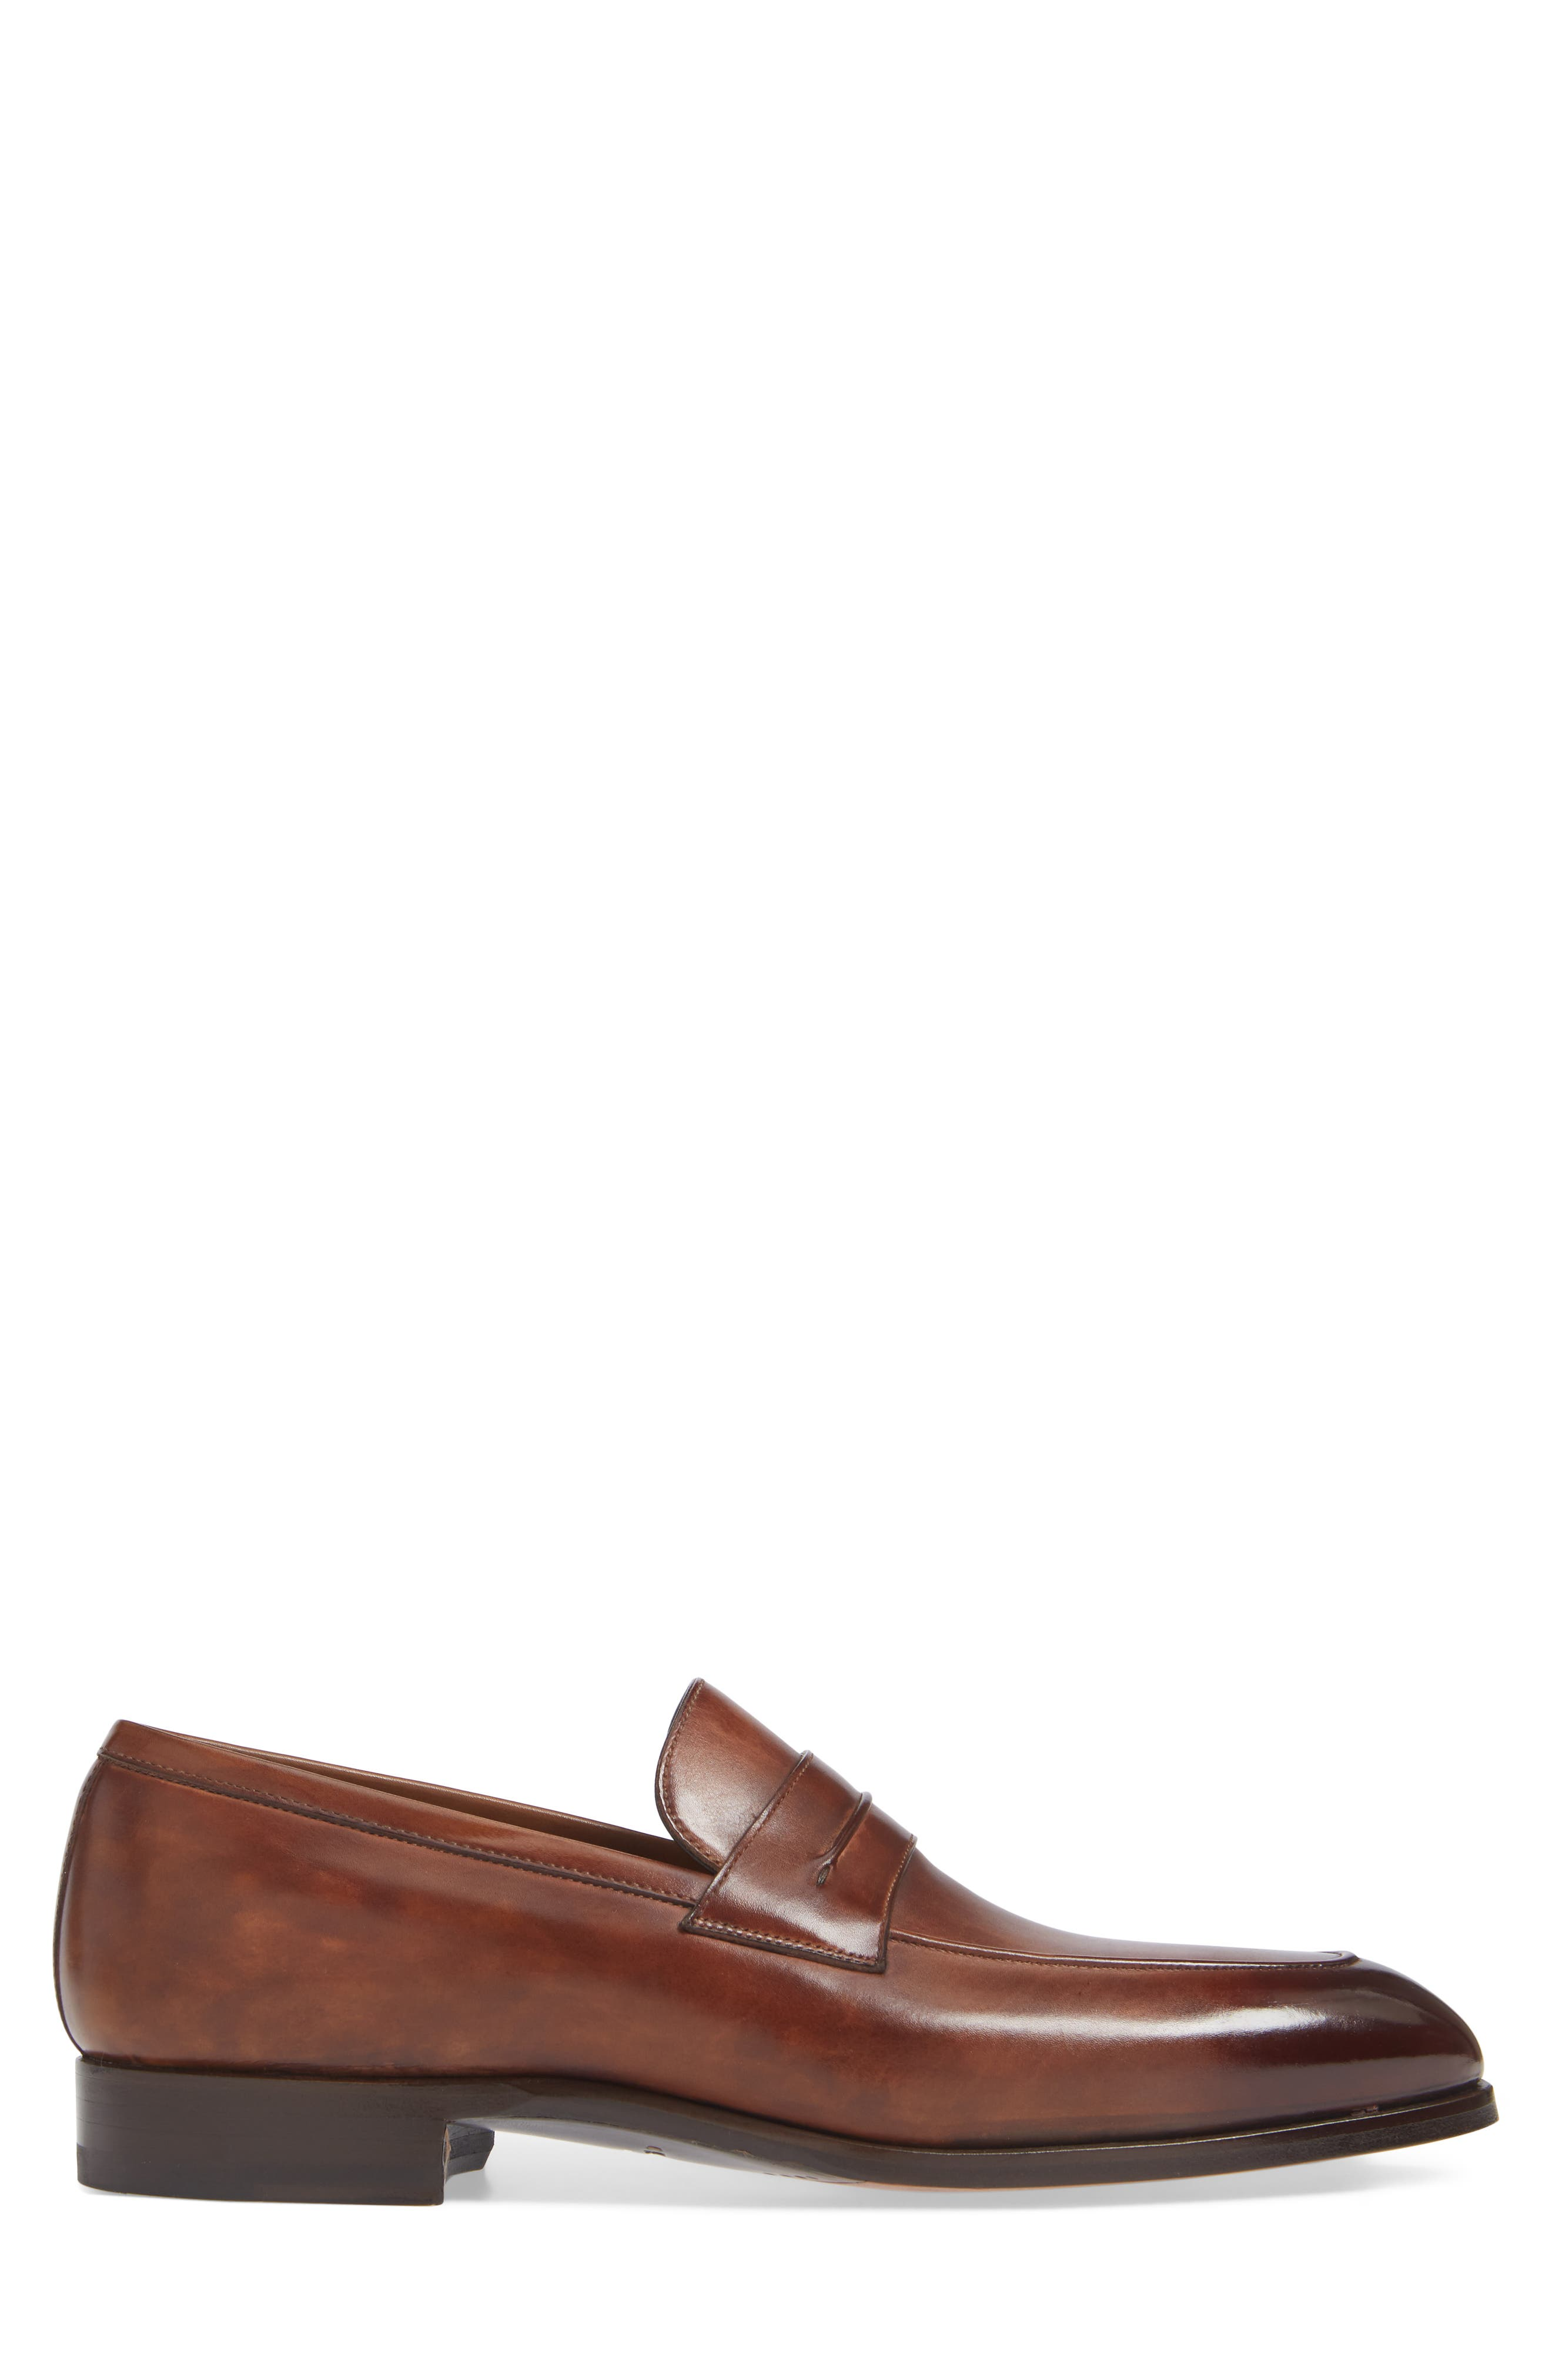 Sullivan Penny Loafer,                             Alternate thumbnail 3, color,                             240